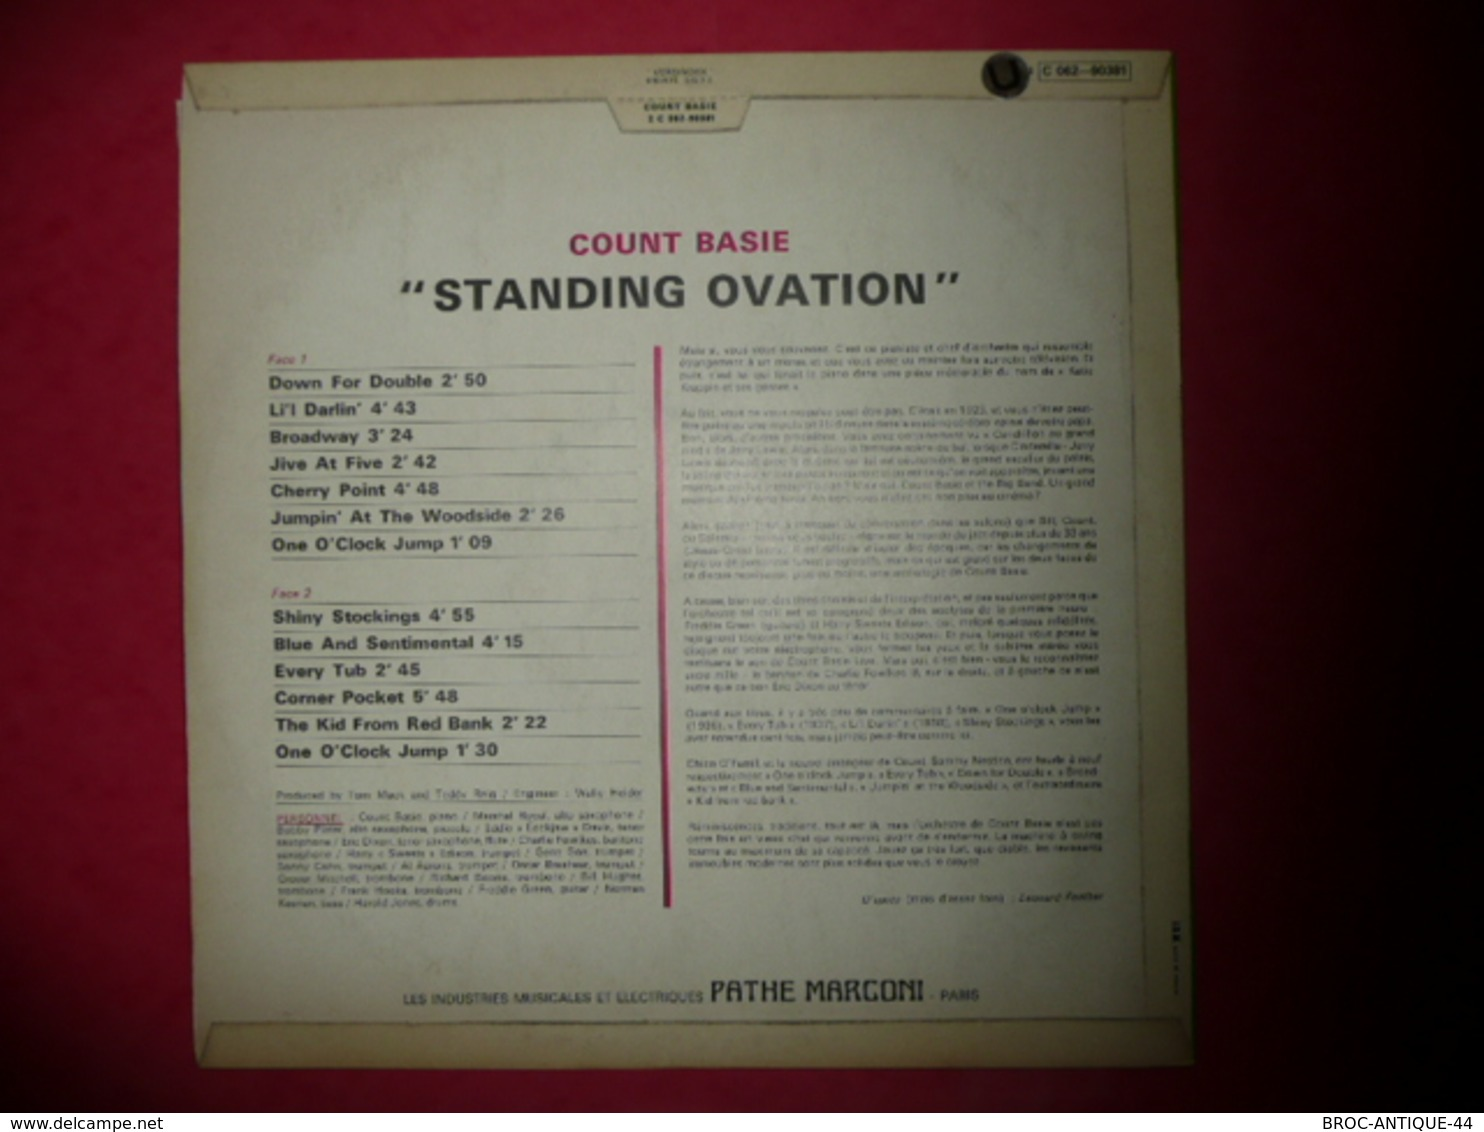 LP33 N°569 - COUNT BASIE - STANDING OVATION - COMPILATION 13 TITRES - Jazz